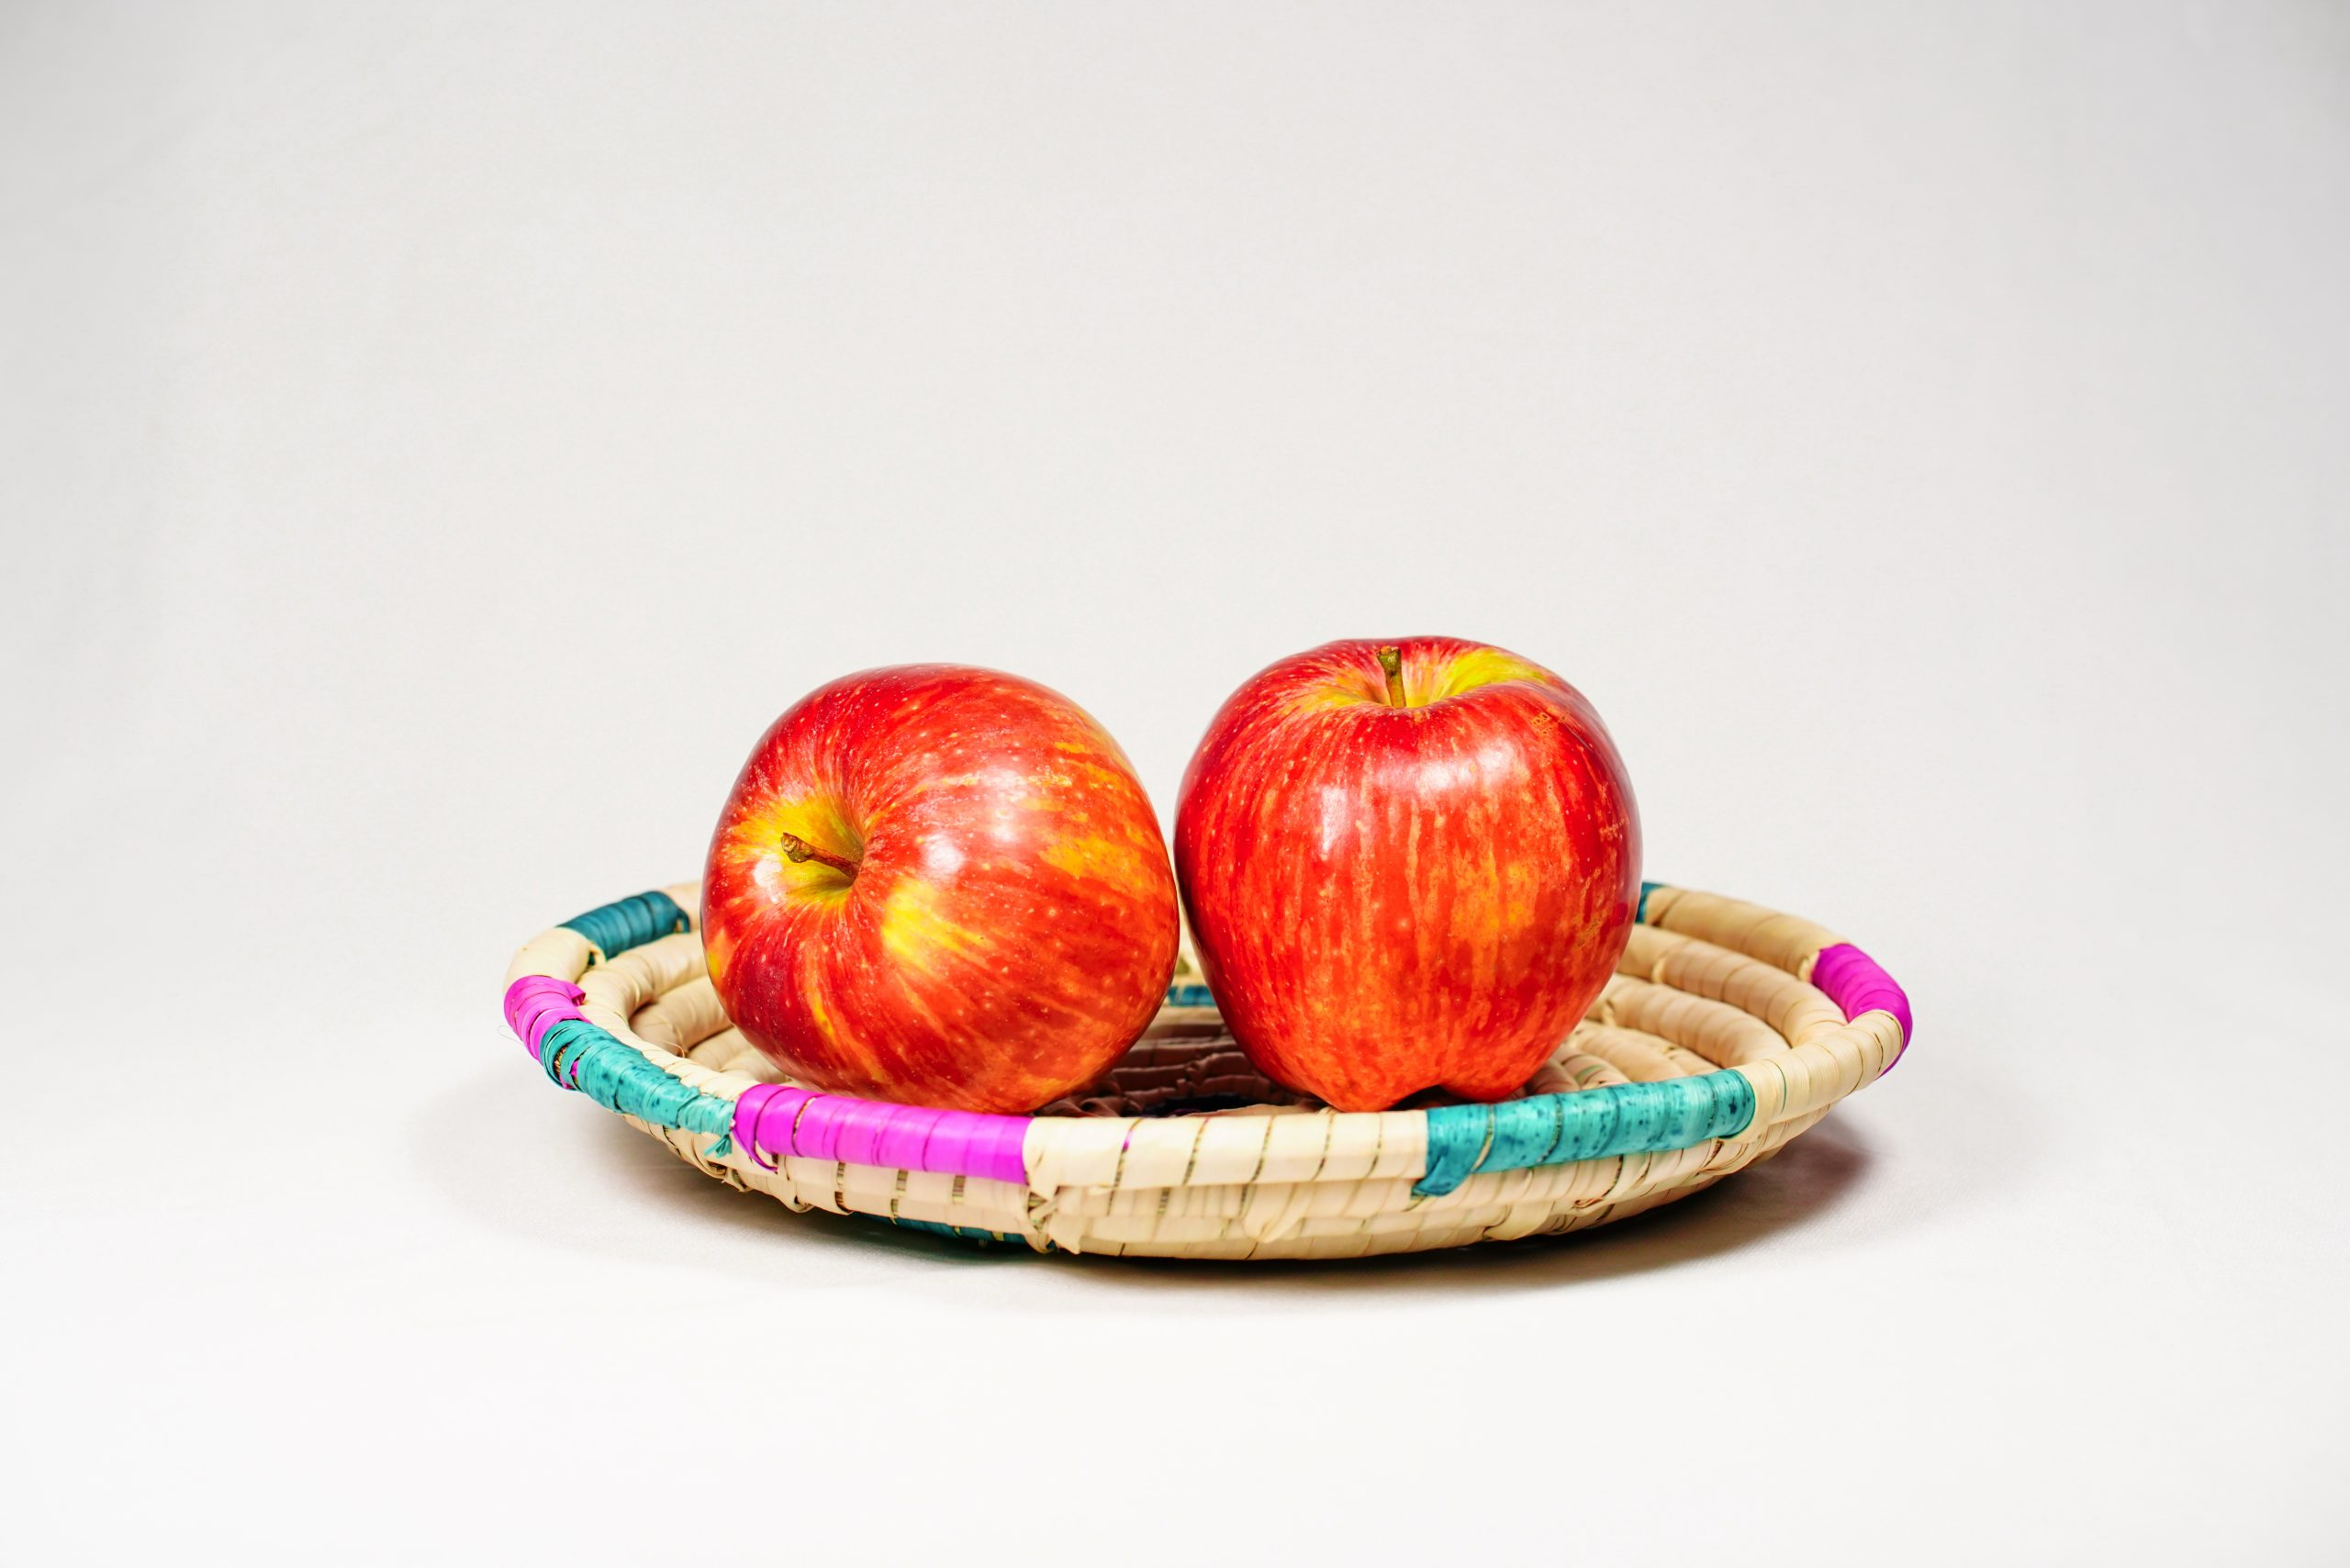 Two red apple in basket